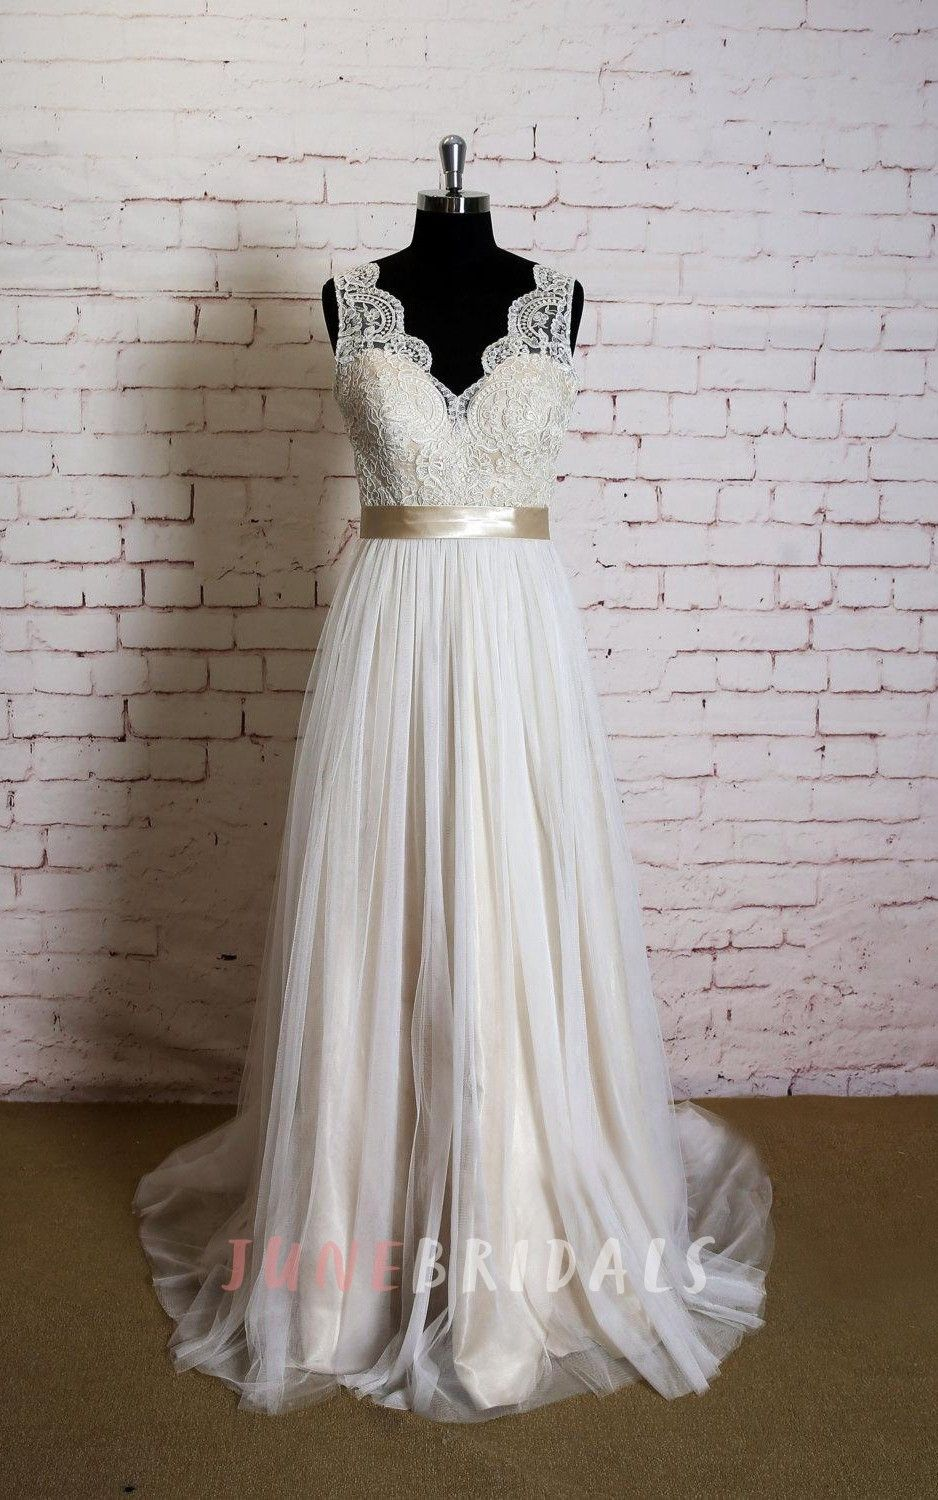 Vneck sleeveless lace top wedding dress with champagne lining i